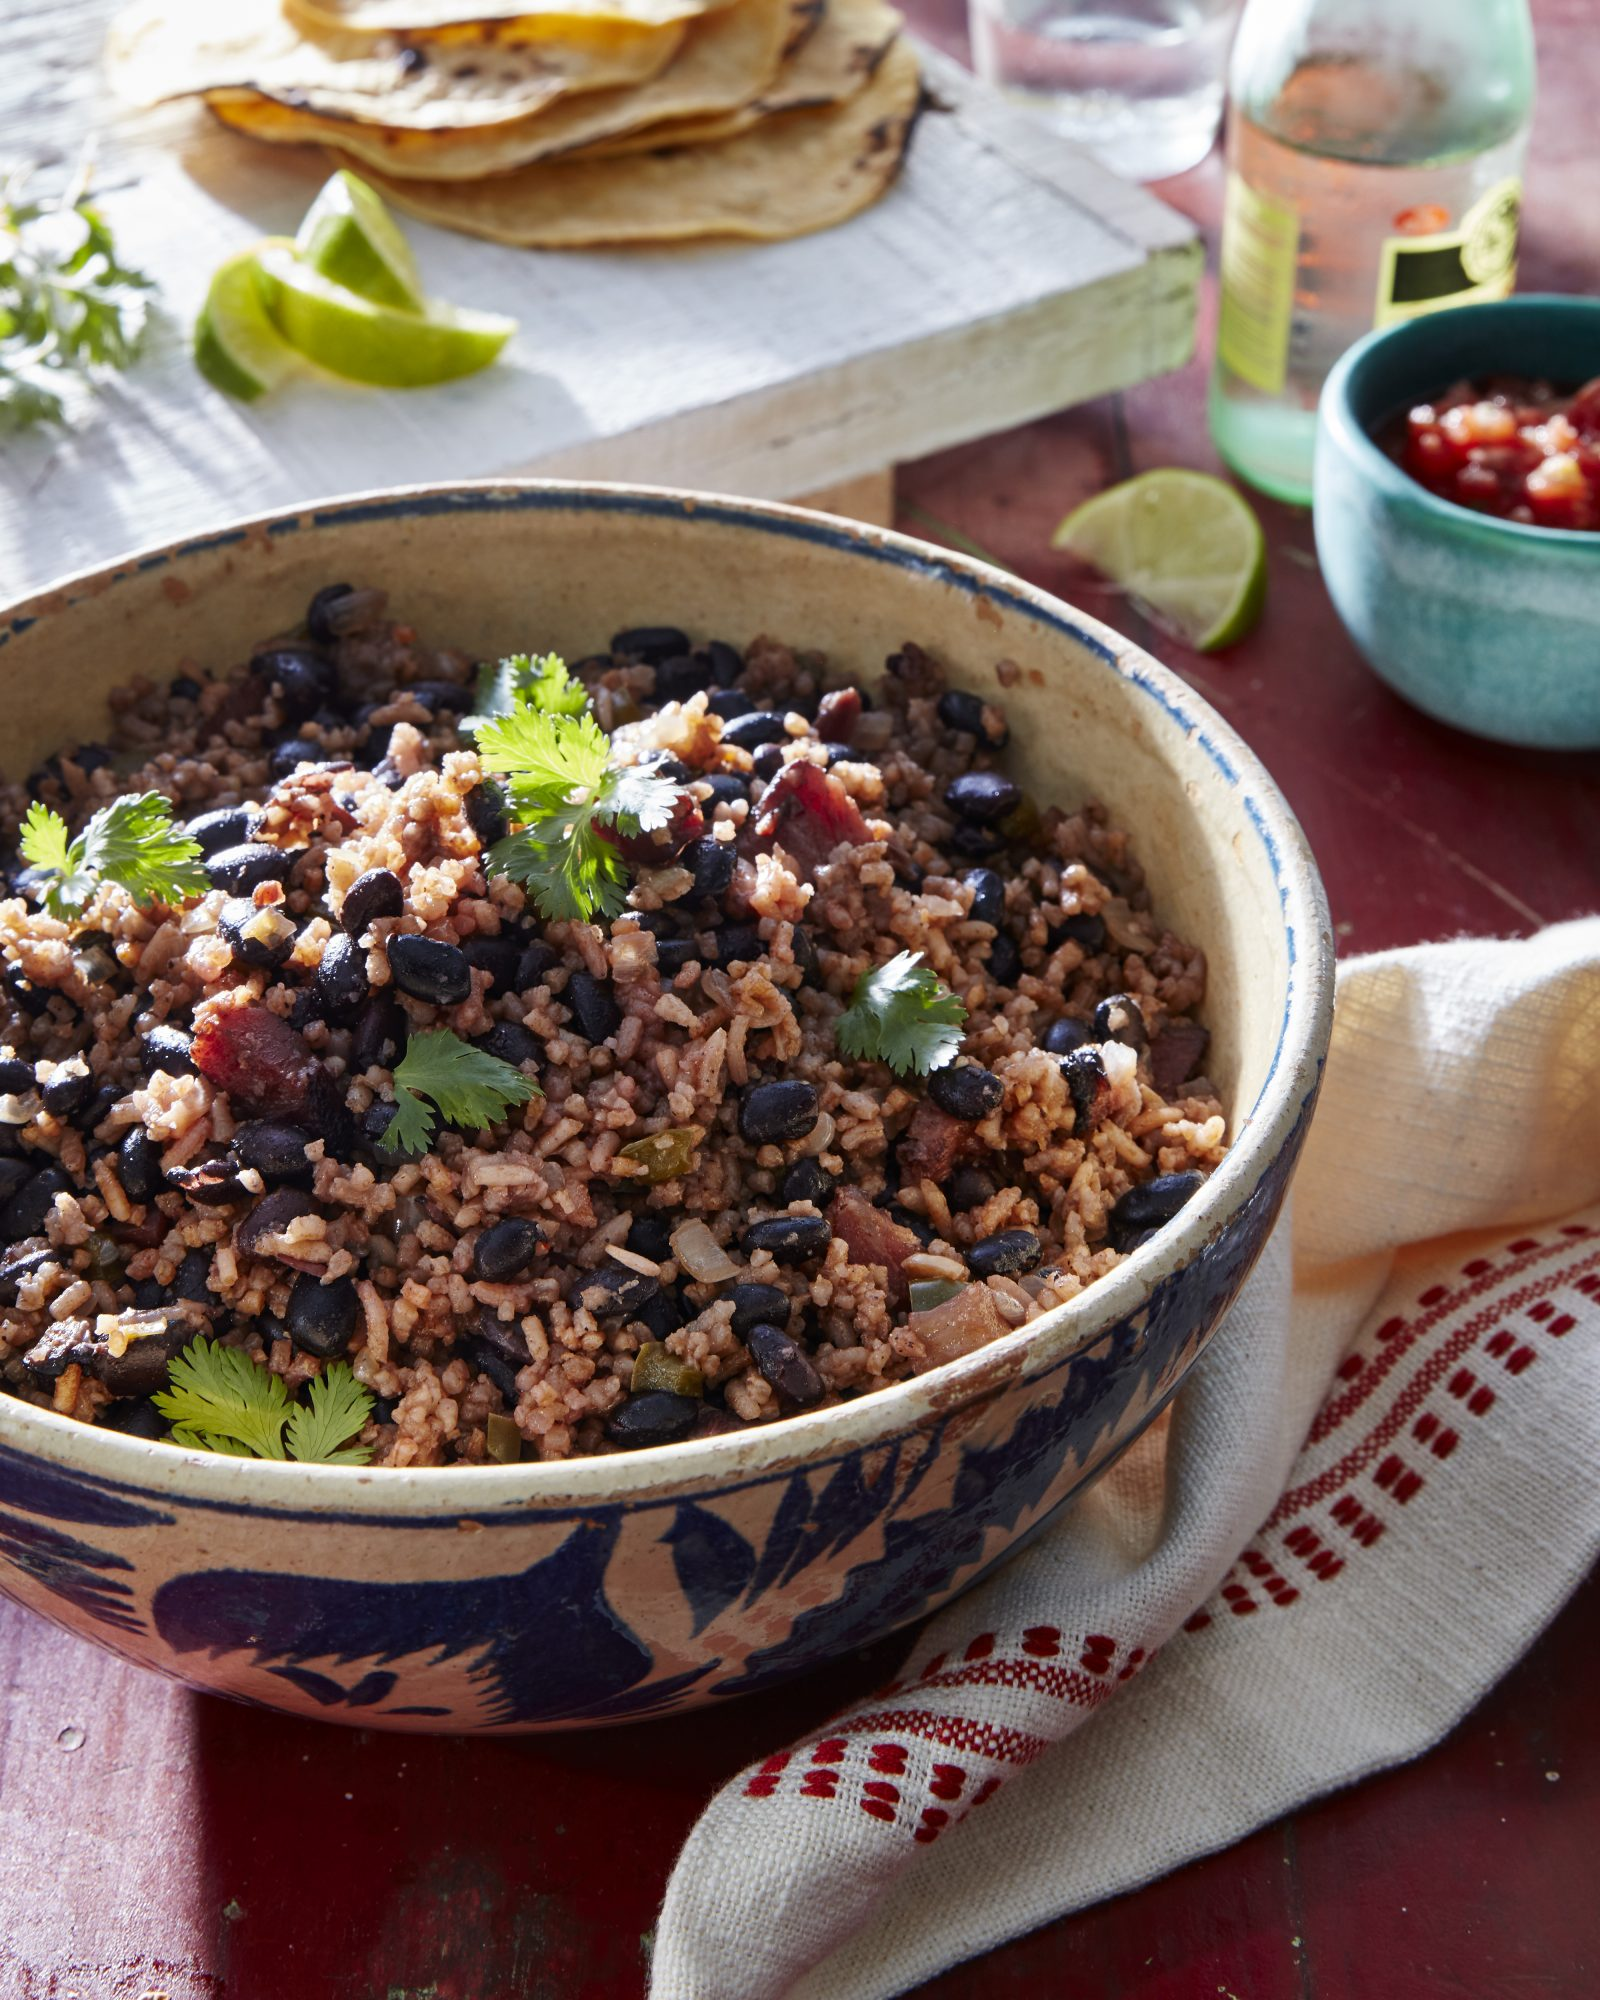 Moros cuban recipe myrecipes photo jen causey food styling rishon hanners prop styling lindsey lower forumfinder Image collections